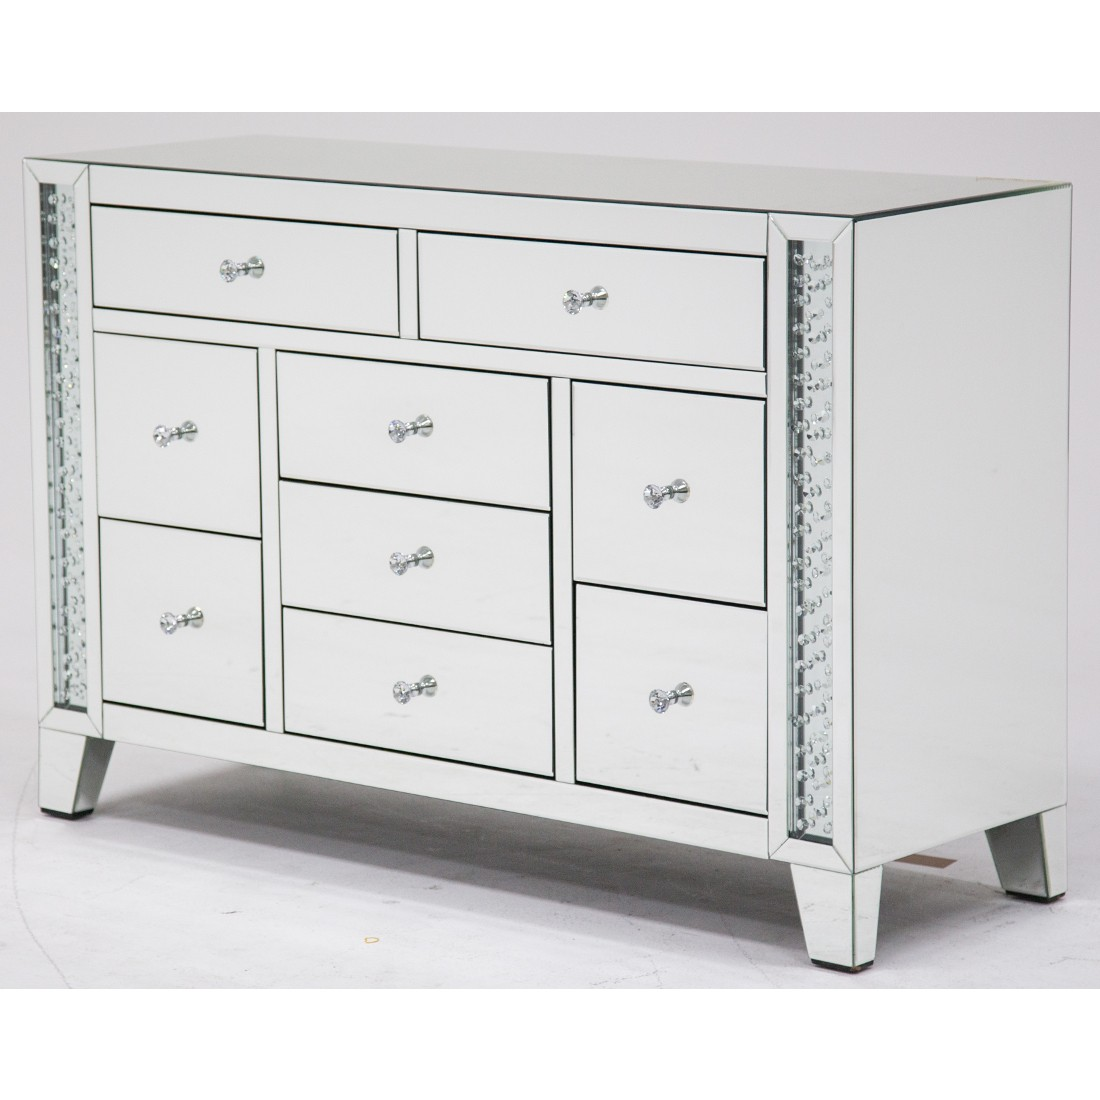 aico montreal accent storage chest drawer clear local furniture safavieh console table powell espresso round sea themed bedroom door bar pier one tables victorian tall skinny dale